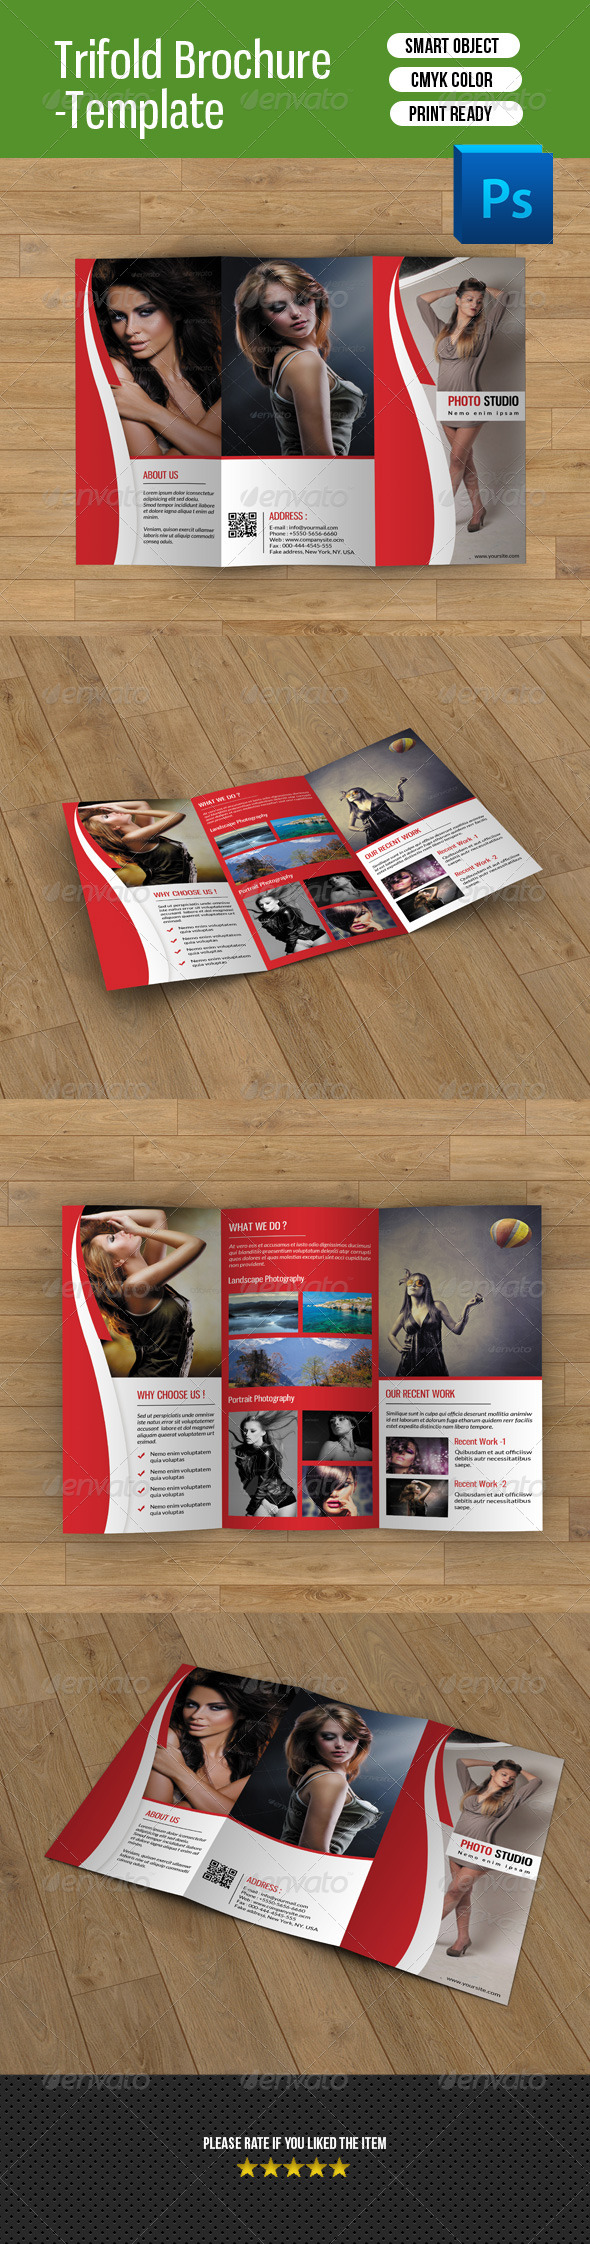 Trifold Brochure for Photography-V56